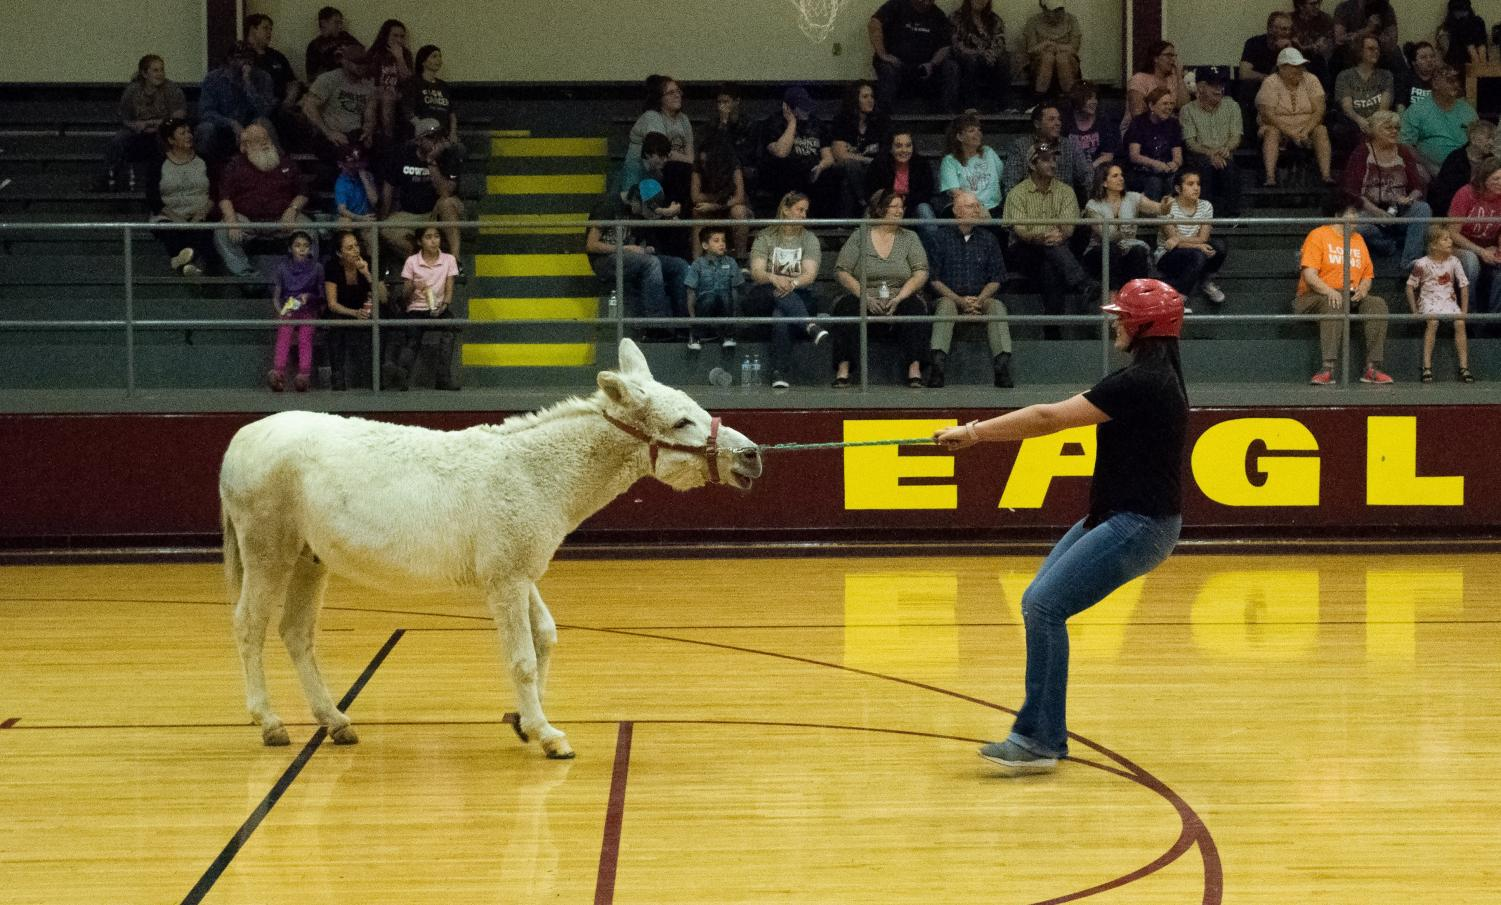 Coach Tuerck attempts to control her donkey.